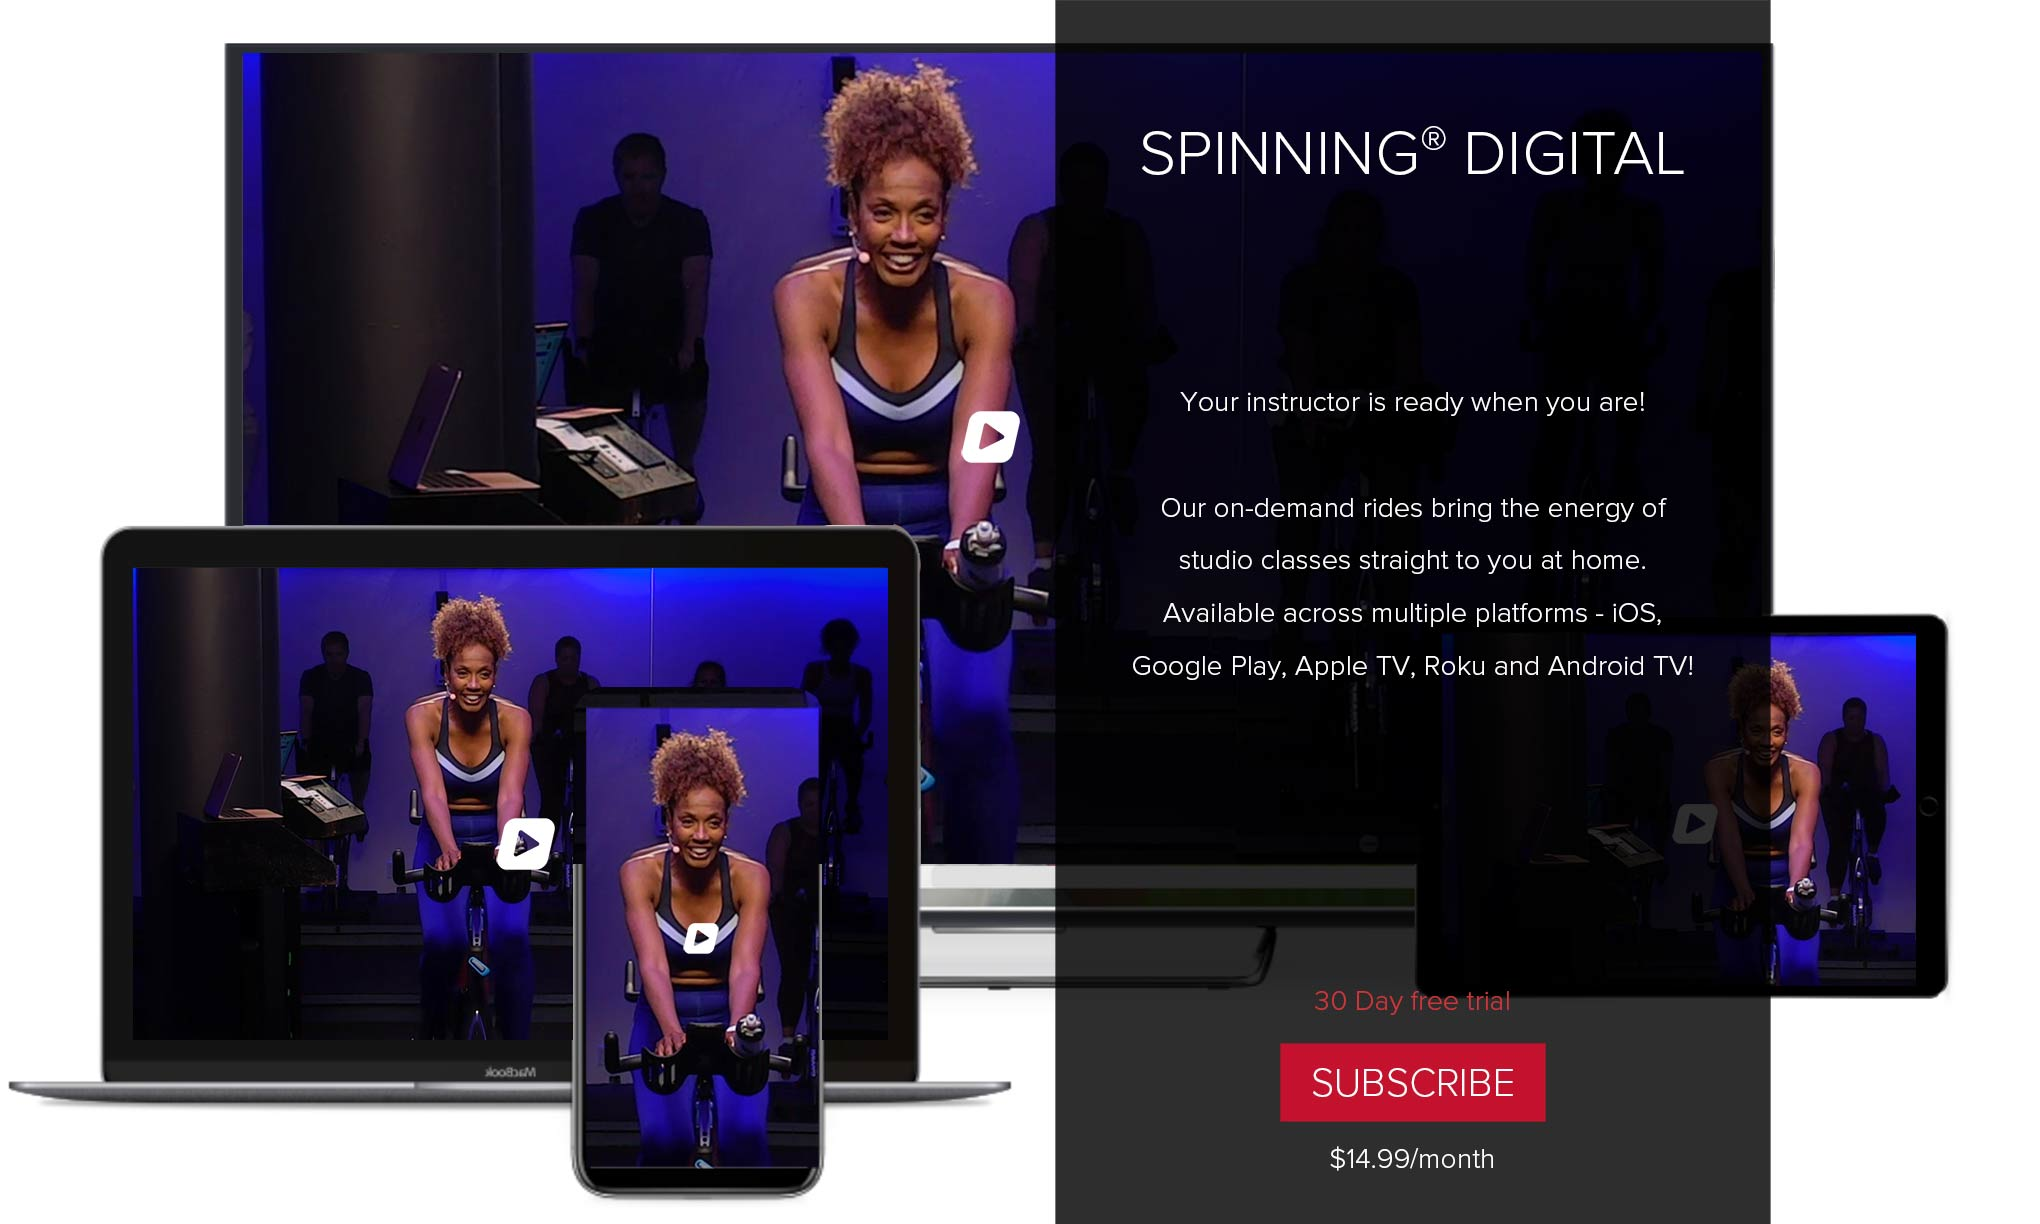 Spinning® Digital. Your instructor is ready when you are! Our on-demand rides bring the energy of home studio classes straight to you at home. Available across multiple platform - iOS, Google Play, Apple TV, Roku and Android TV! 30 Day free trail. Subscribe. $14.99/month